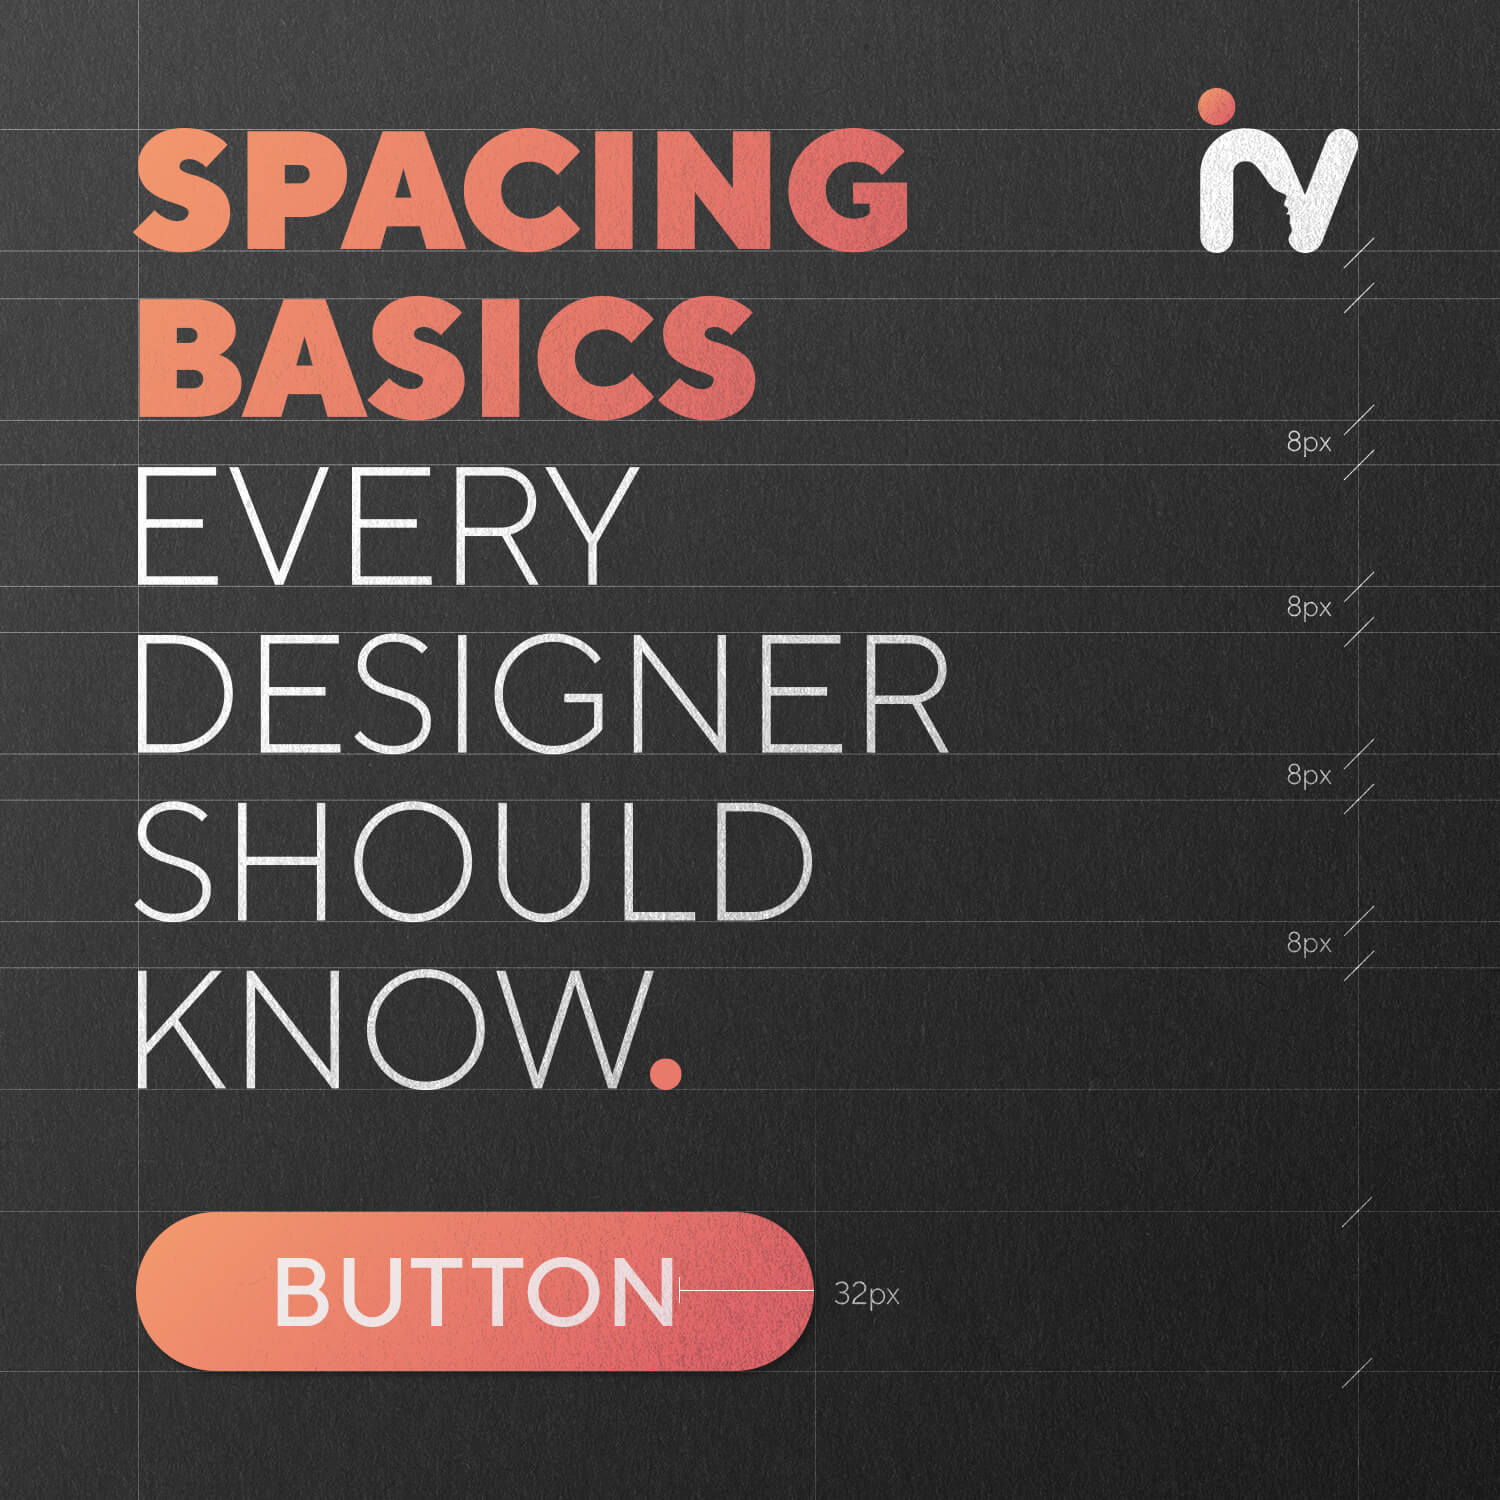 spacing basics every designer should know